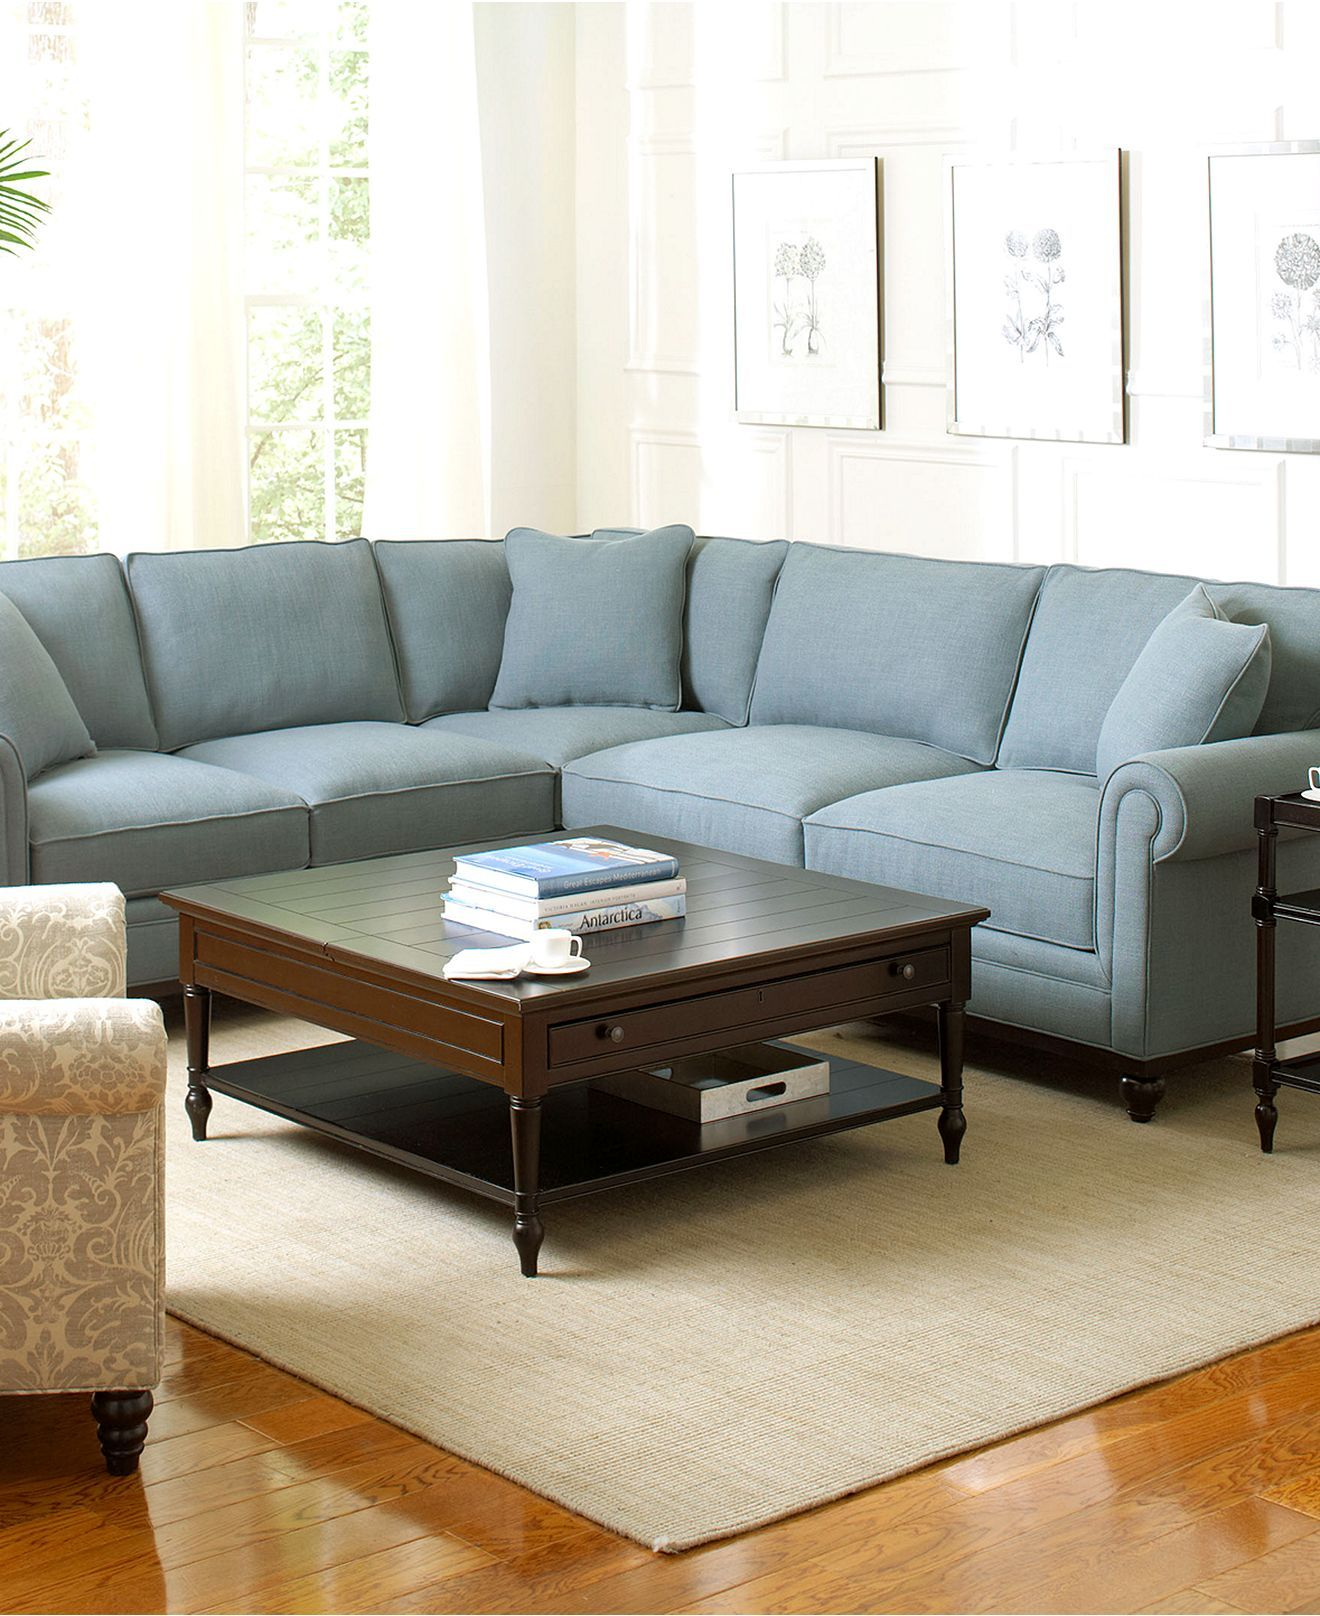 Martha Stewart Living Room Furniture Sets & Pieces Club Sectional